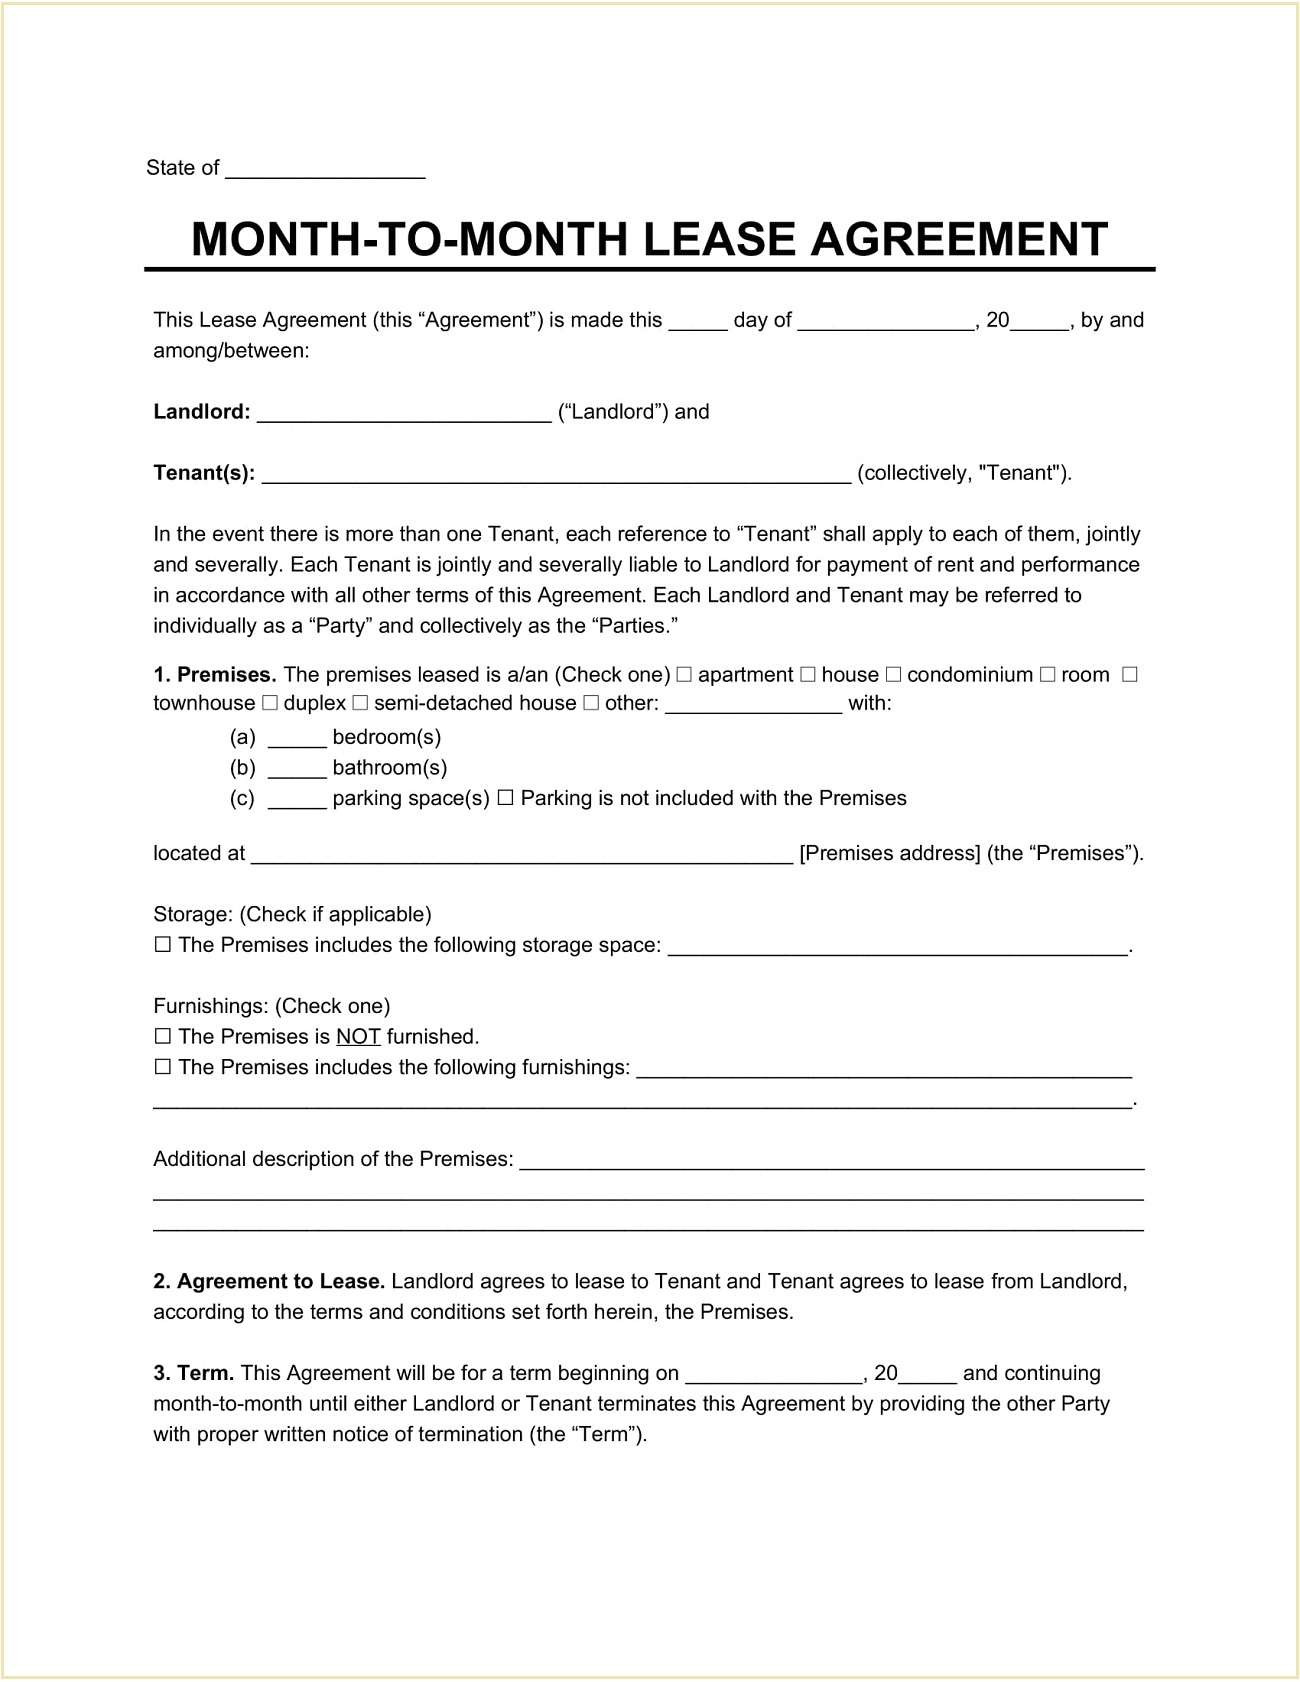 Month To Month Residential Lease Agreement Template Word